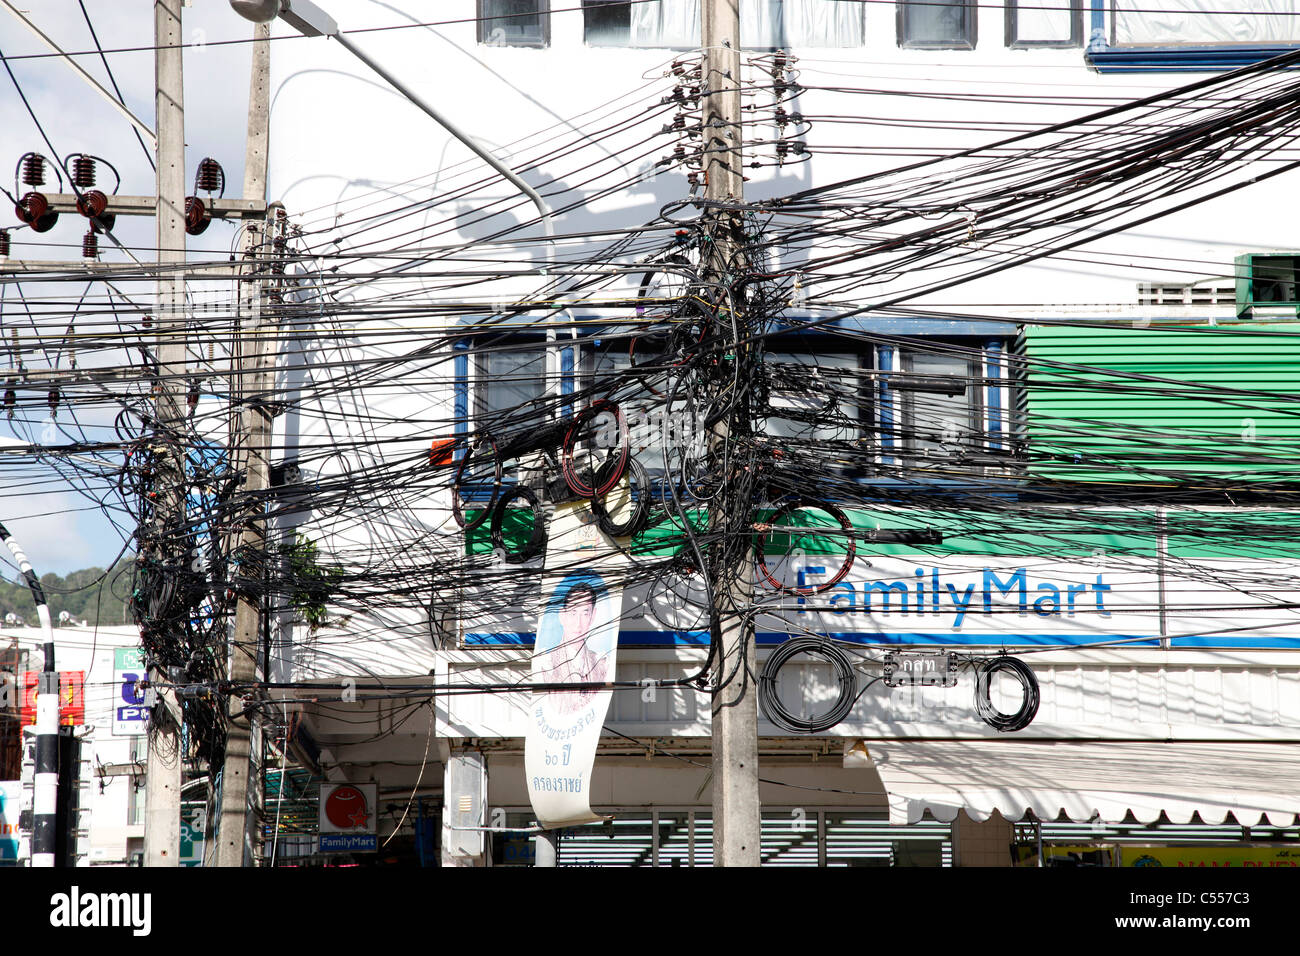 telegraph poles and dangerous tangled mass of electricity Wells Fargo Wiring Money Online Money Wiring Services